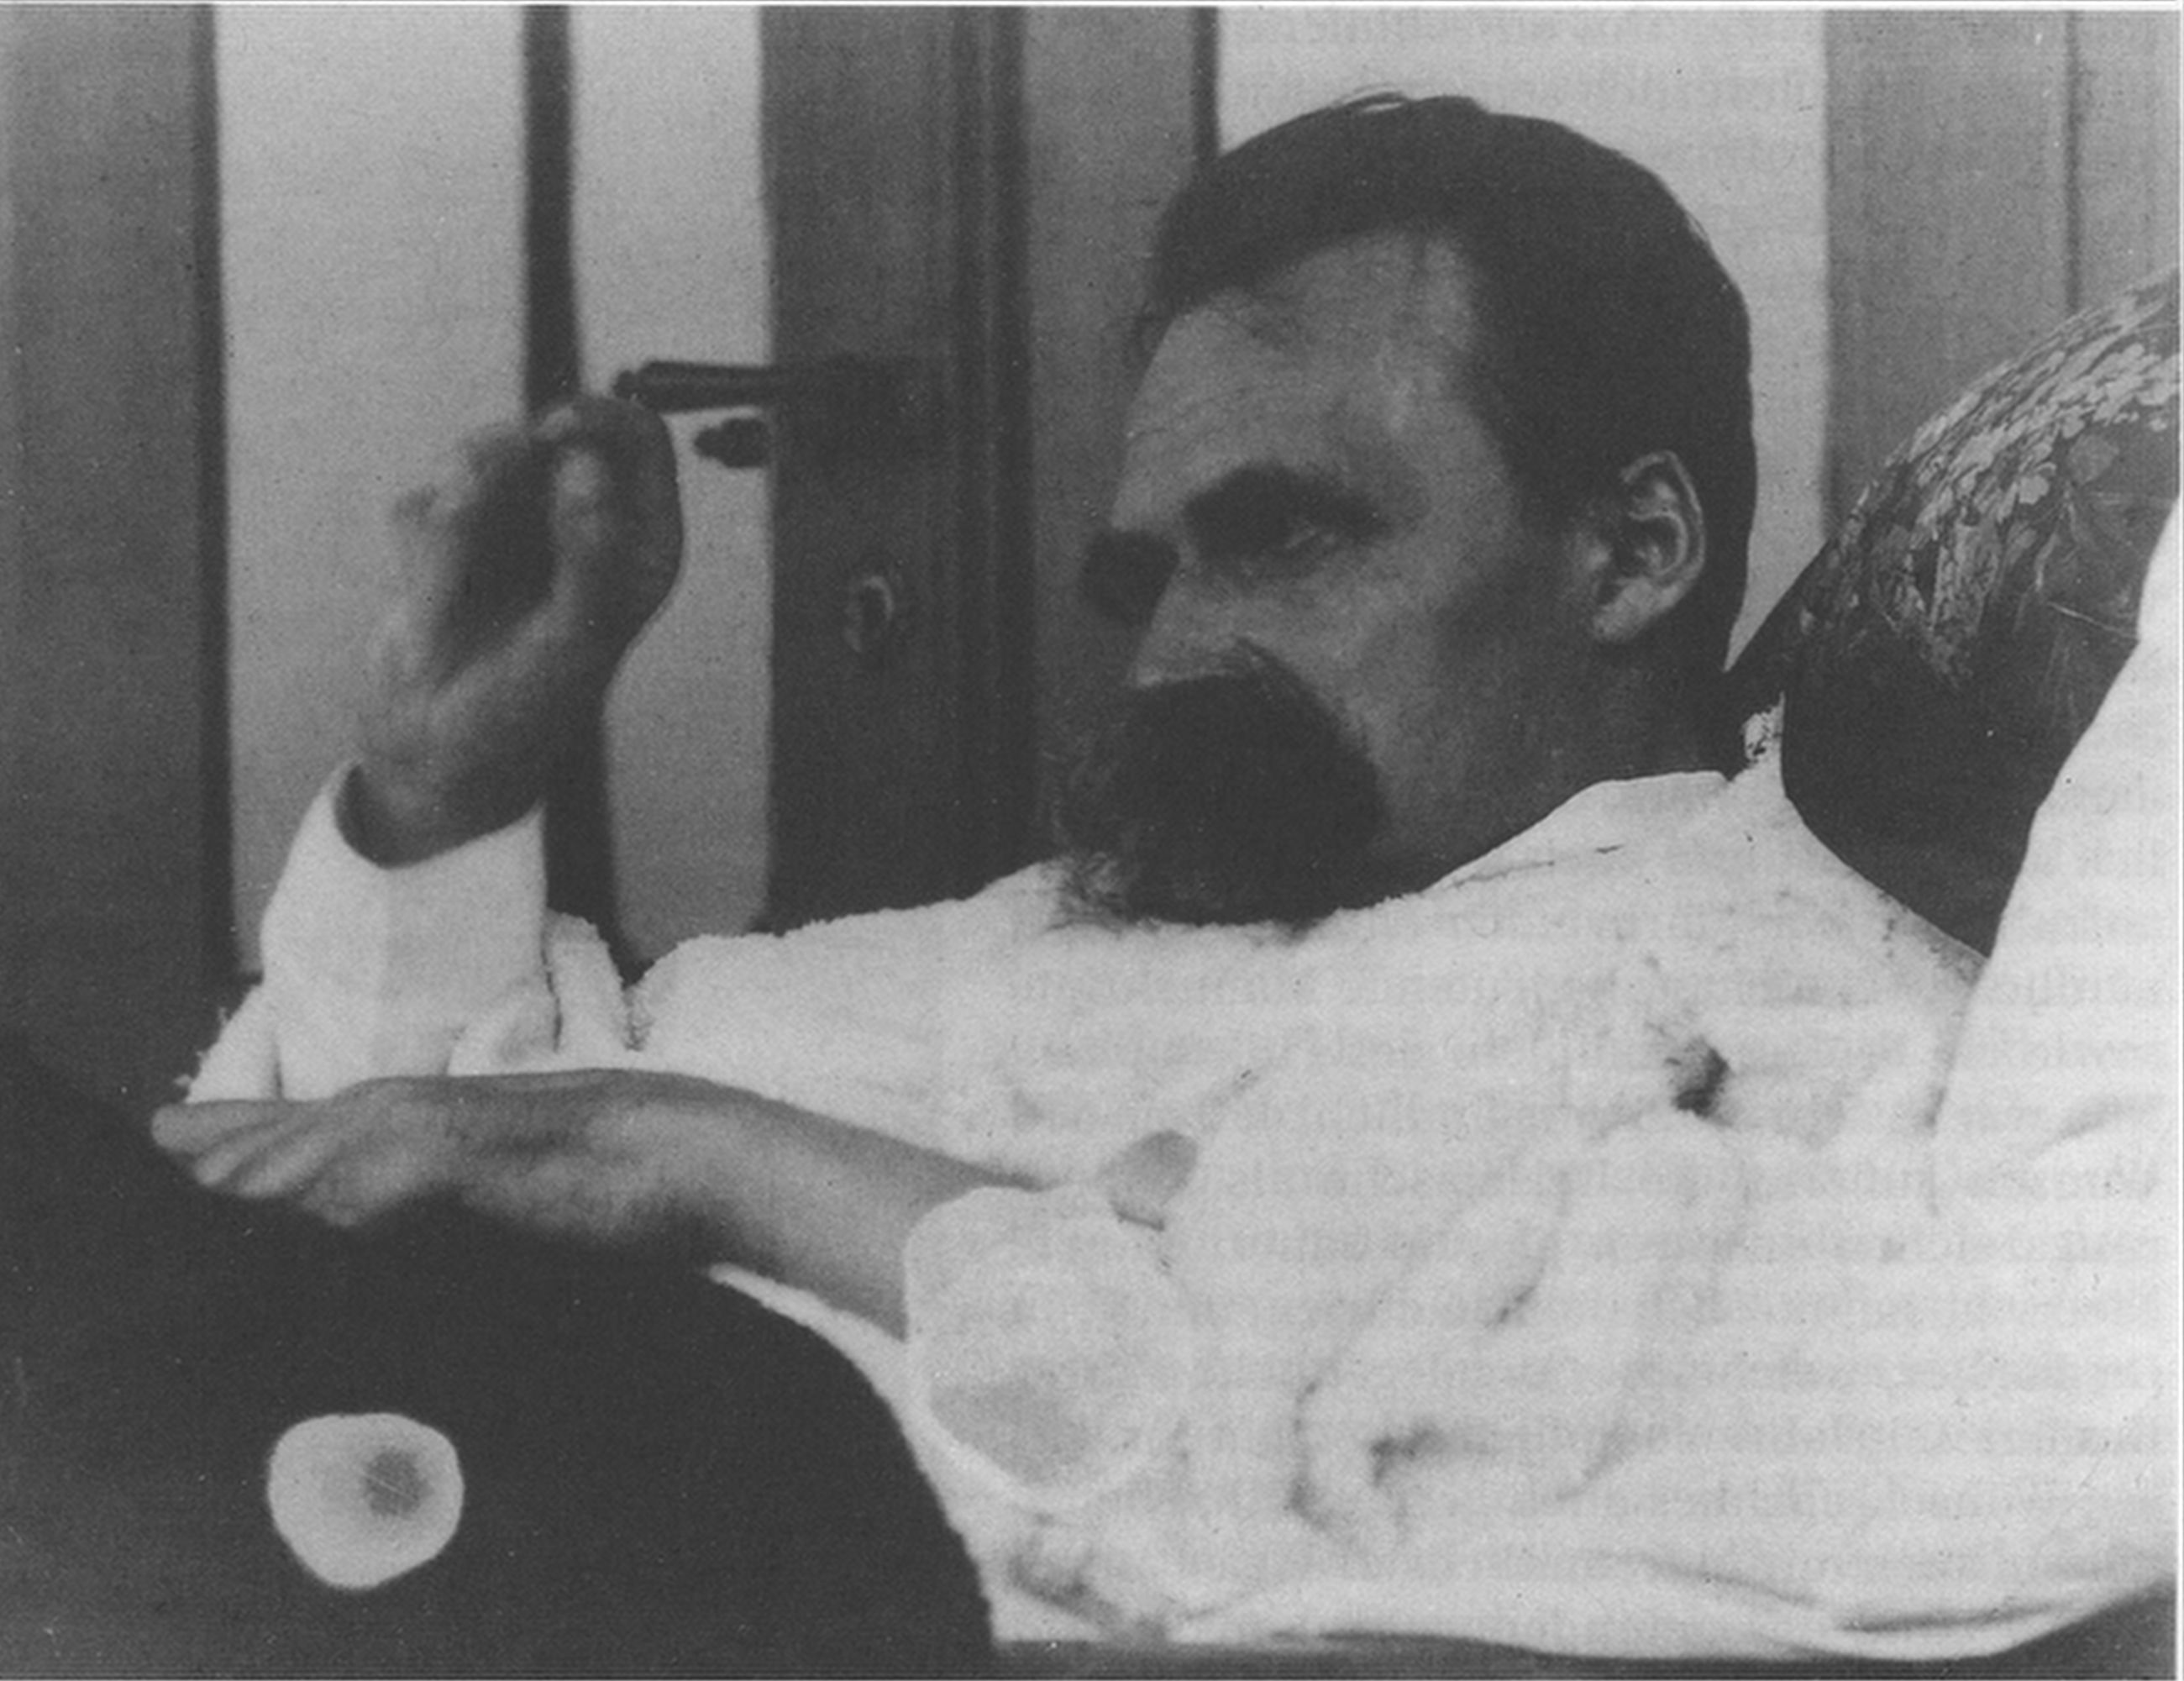 an introduction to friedrich nietzsches views on morality Daybreak - thoughts on the prejudices of morality by friedrich nietzsche  translated by r j hollingdale introduction by michael tanner.